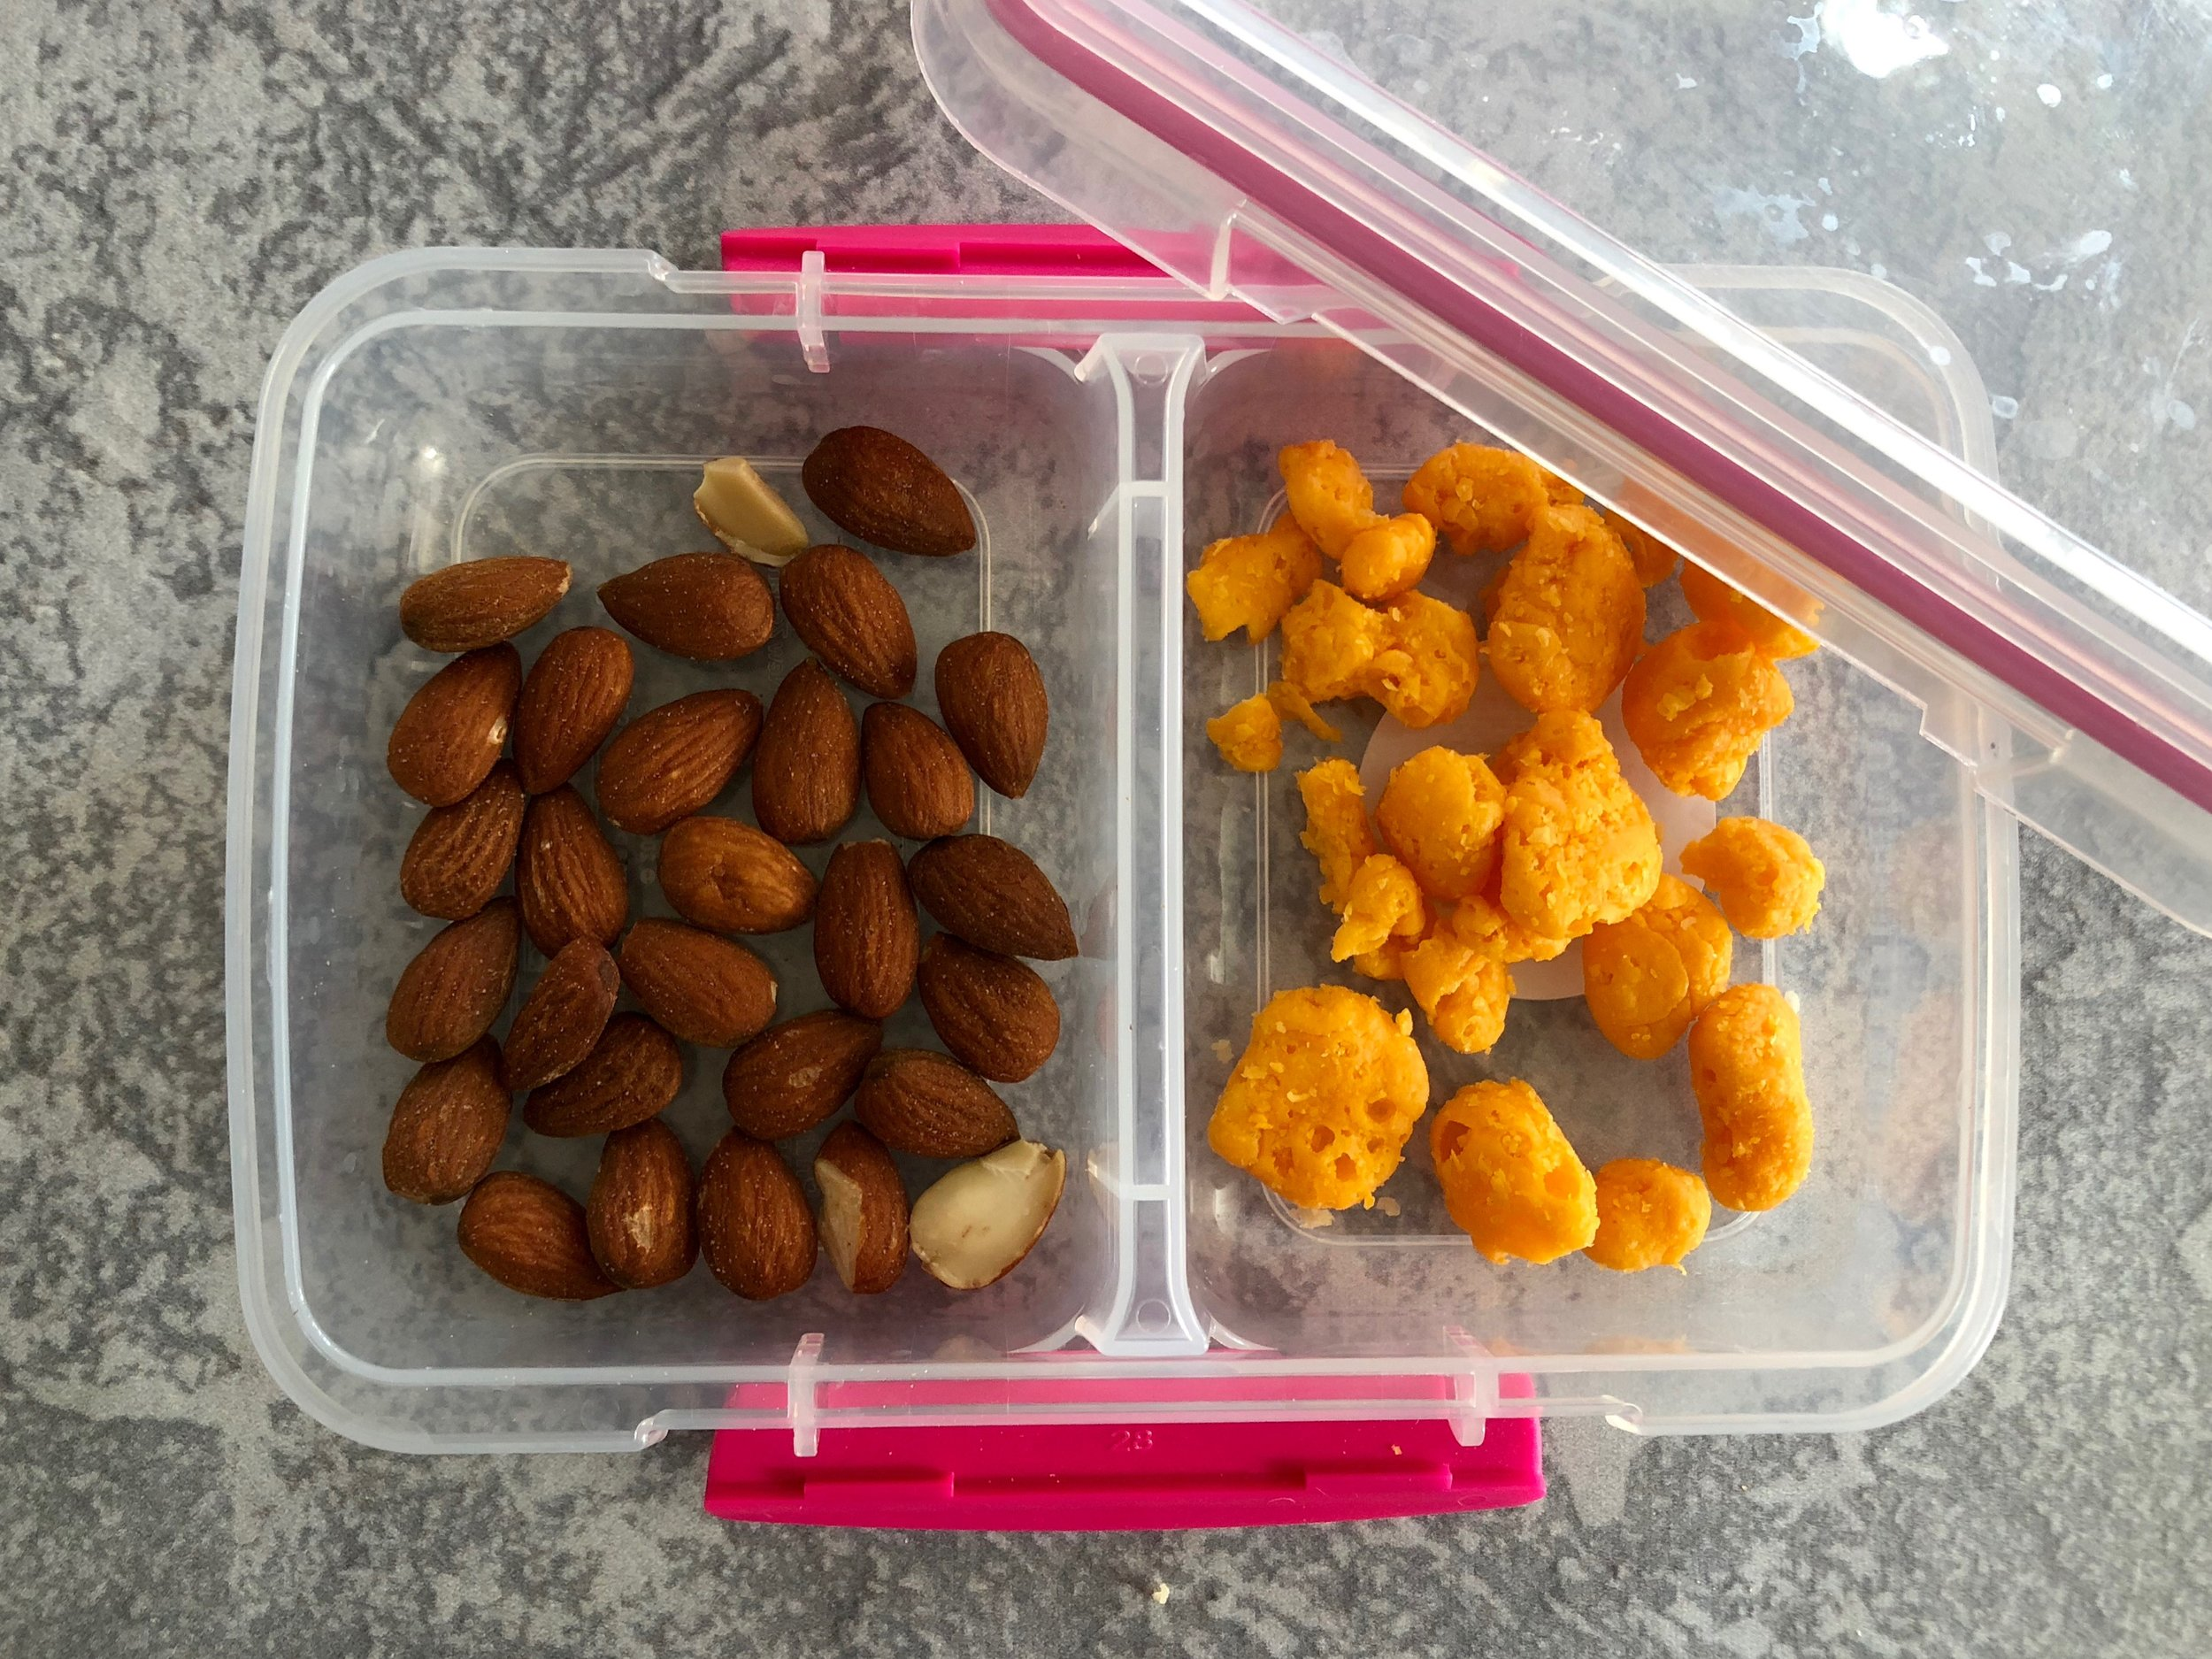 Snack Almonds and Moon Cheese Keto and Low Carb.jpg